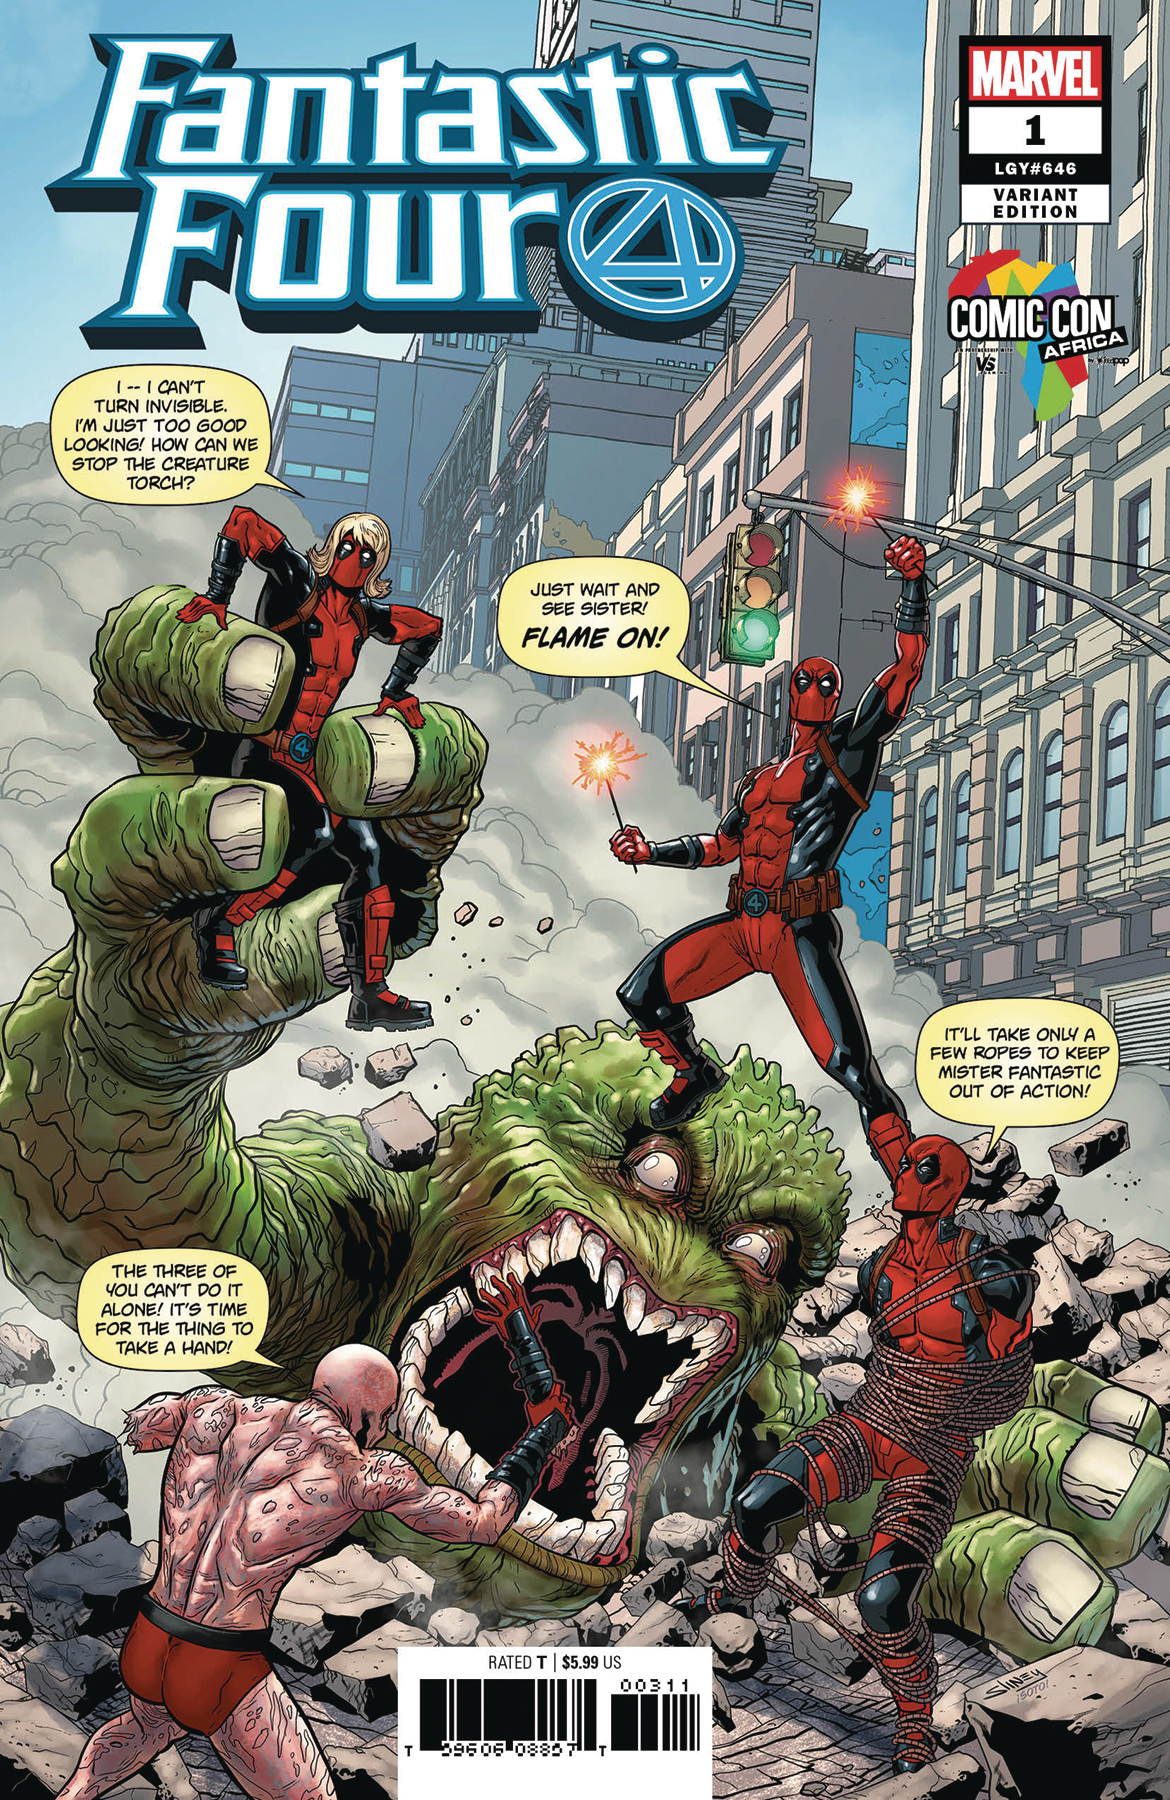 FANTASTIC FOUR #1 SLINEY COMIC CON AFRICA VAR (Net)